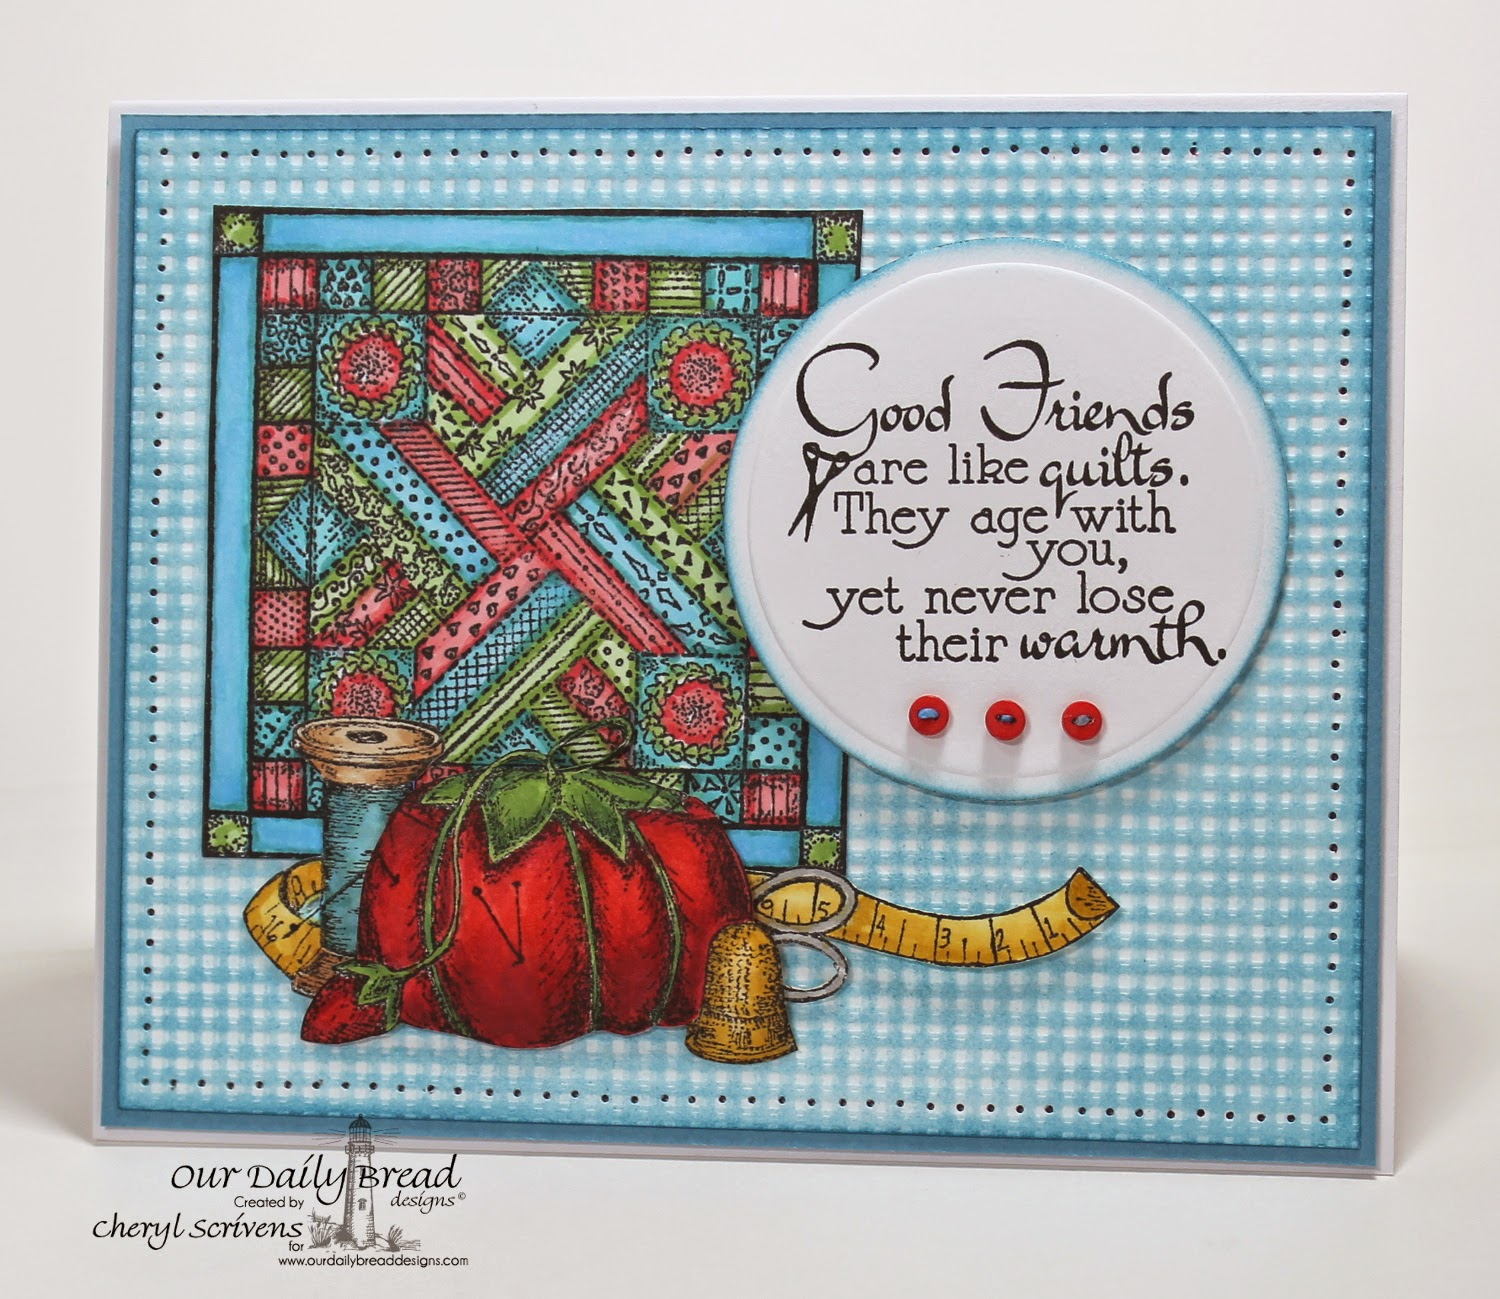 Our Daily Bread Designs, ODBDSLC213, Quilts, Pincushion Single, Spool & Tape, CherylQuilts, Designed by Cheryl Scrivens